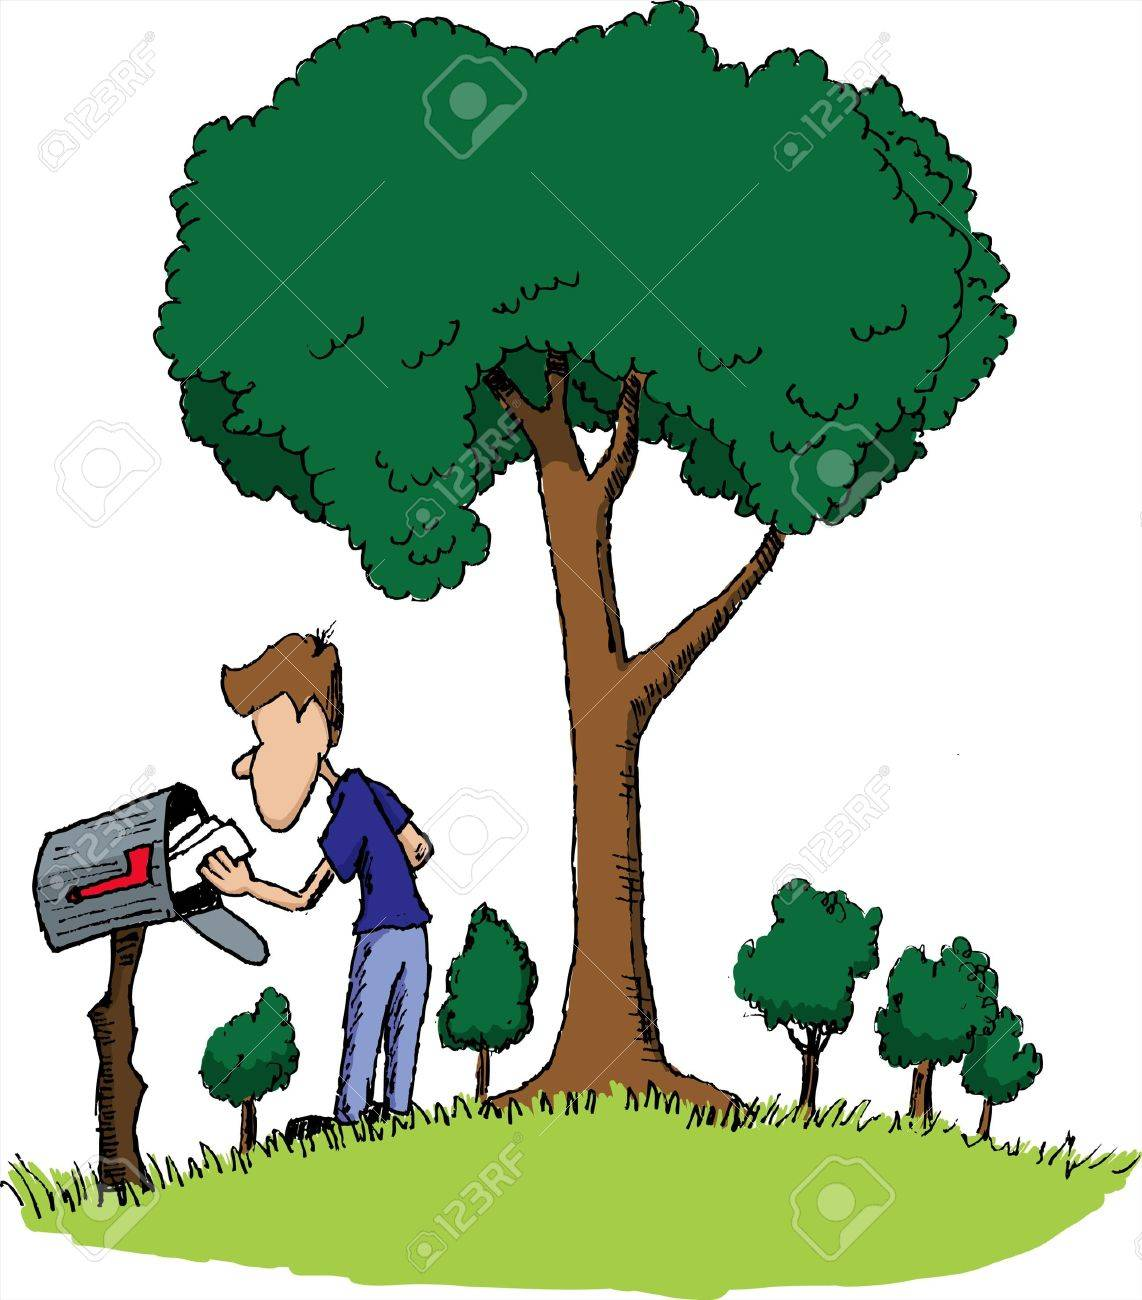 Pen and ink style illustration of a man getting his mail. Stock Vector - 7439815